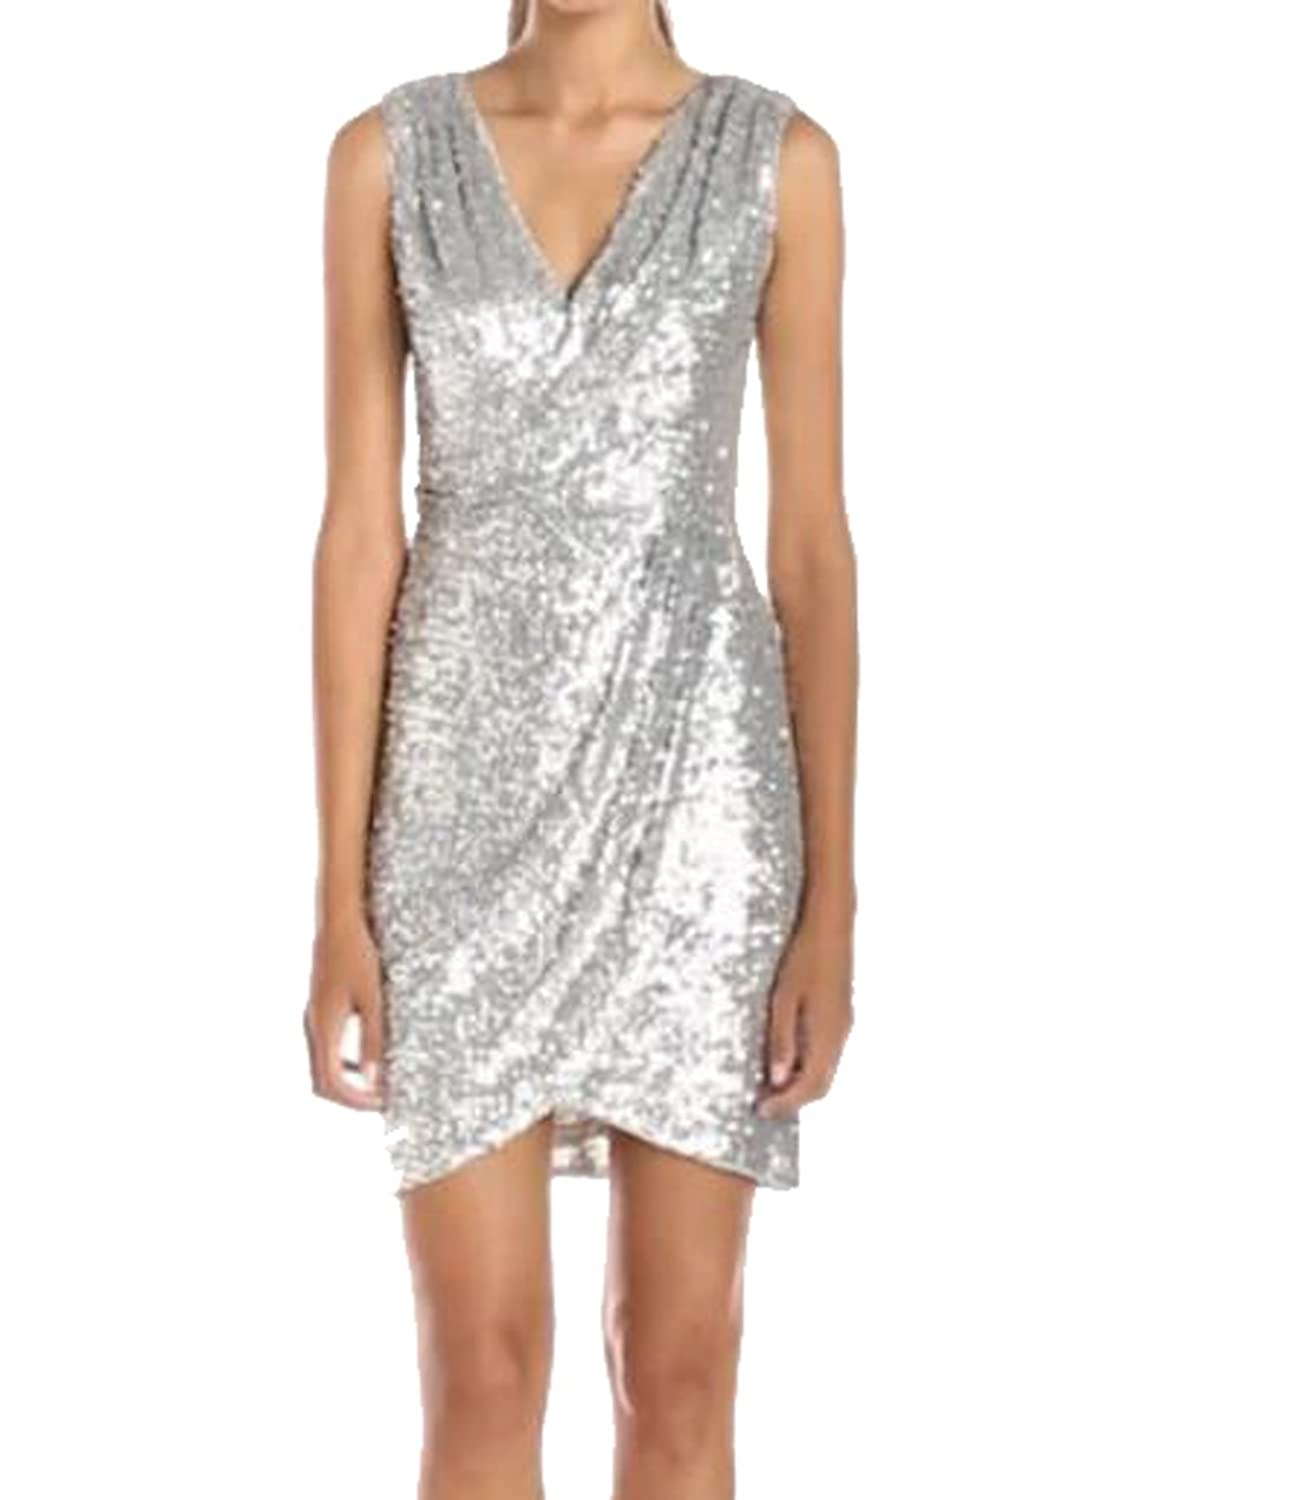 XTX Women Deep V Sleeveless Sequin Sexy Club Dress Party Dress 2XL As Picture